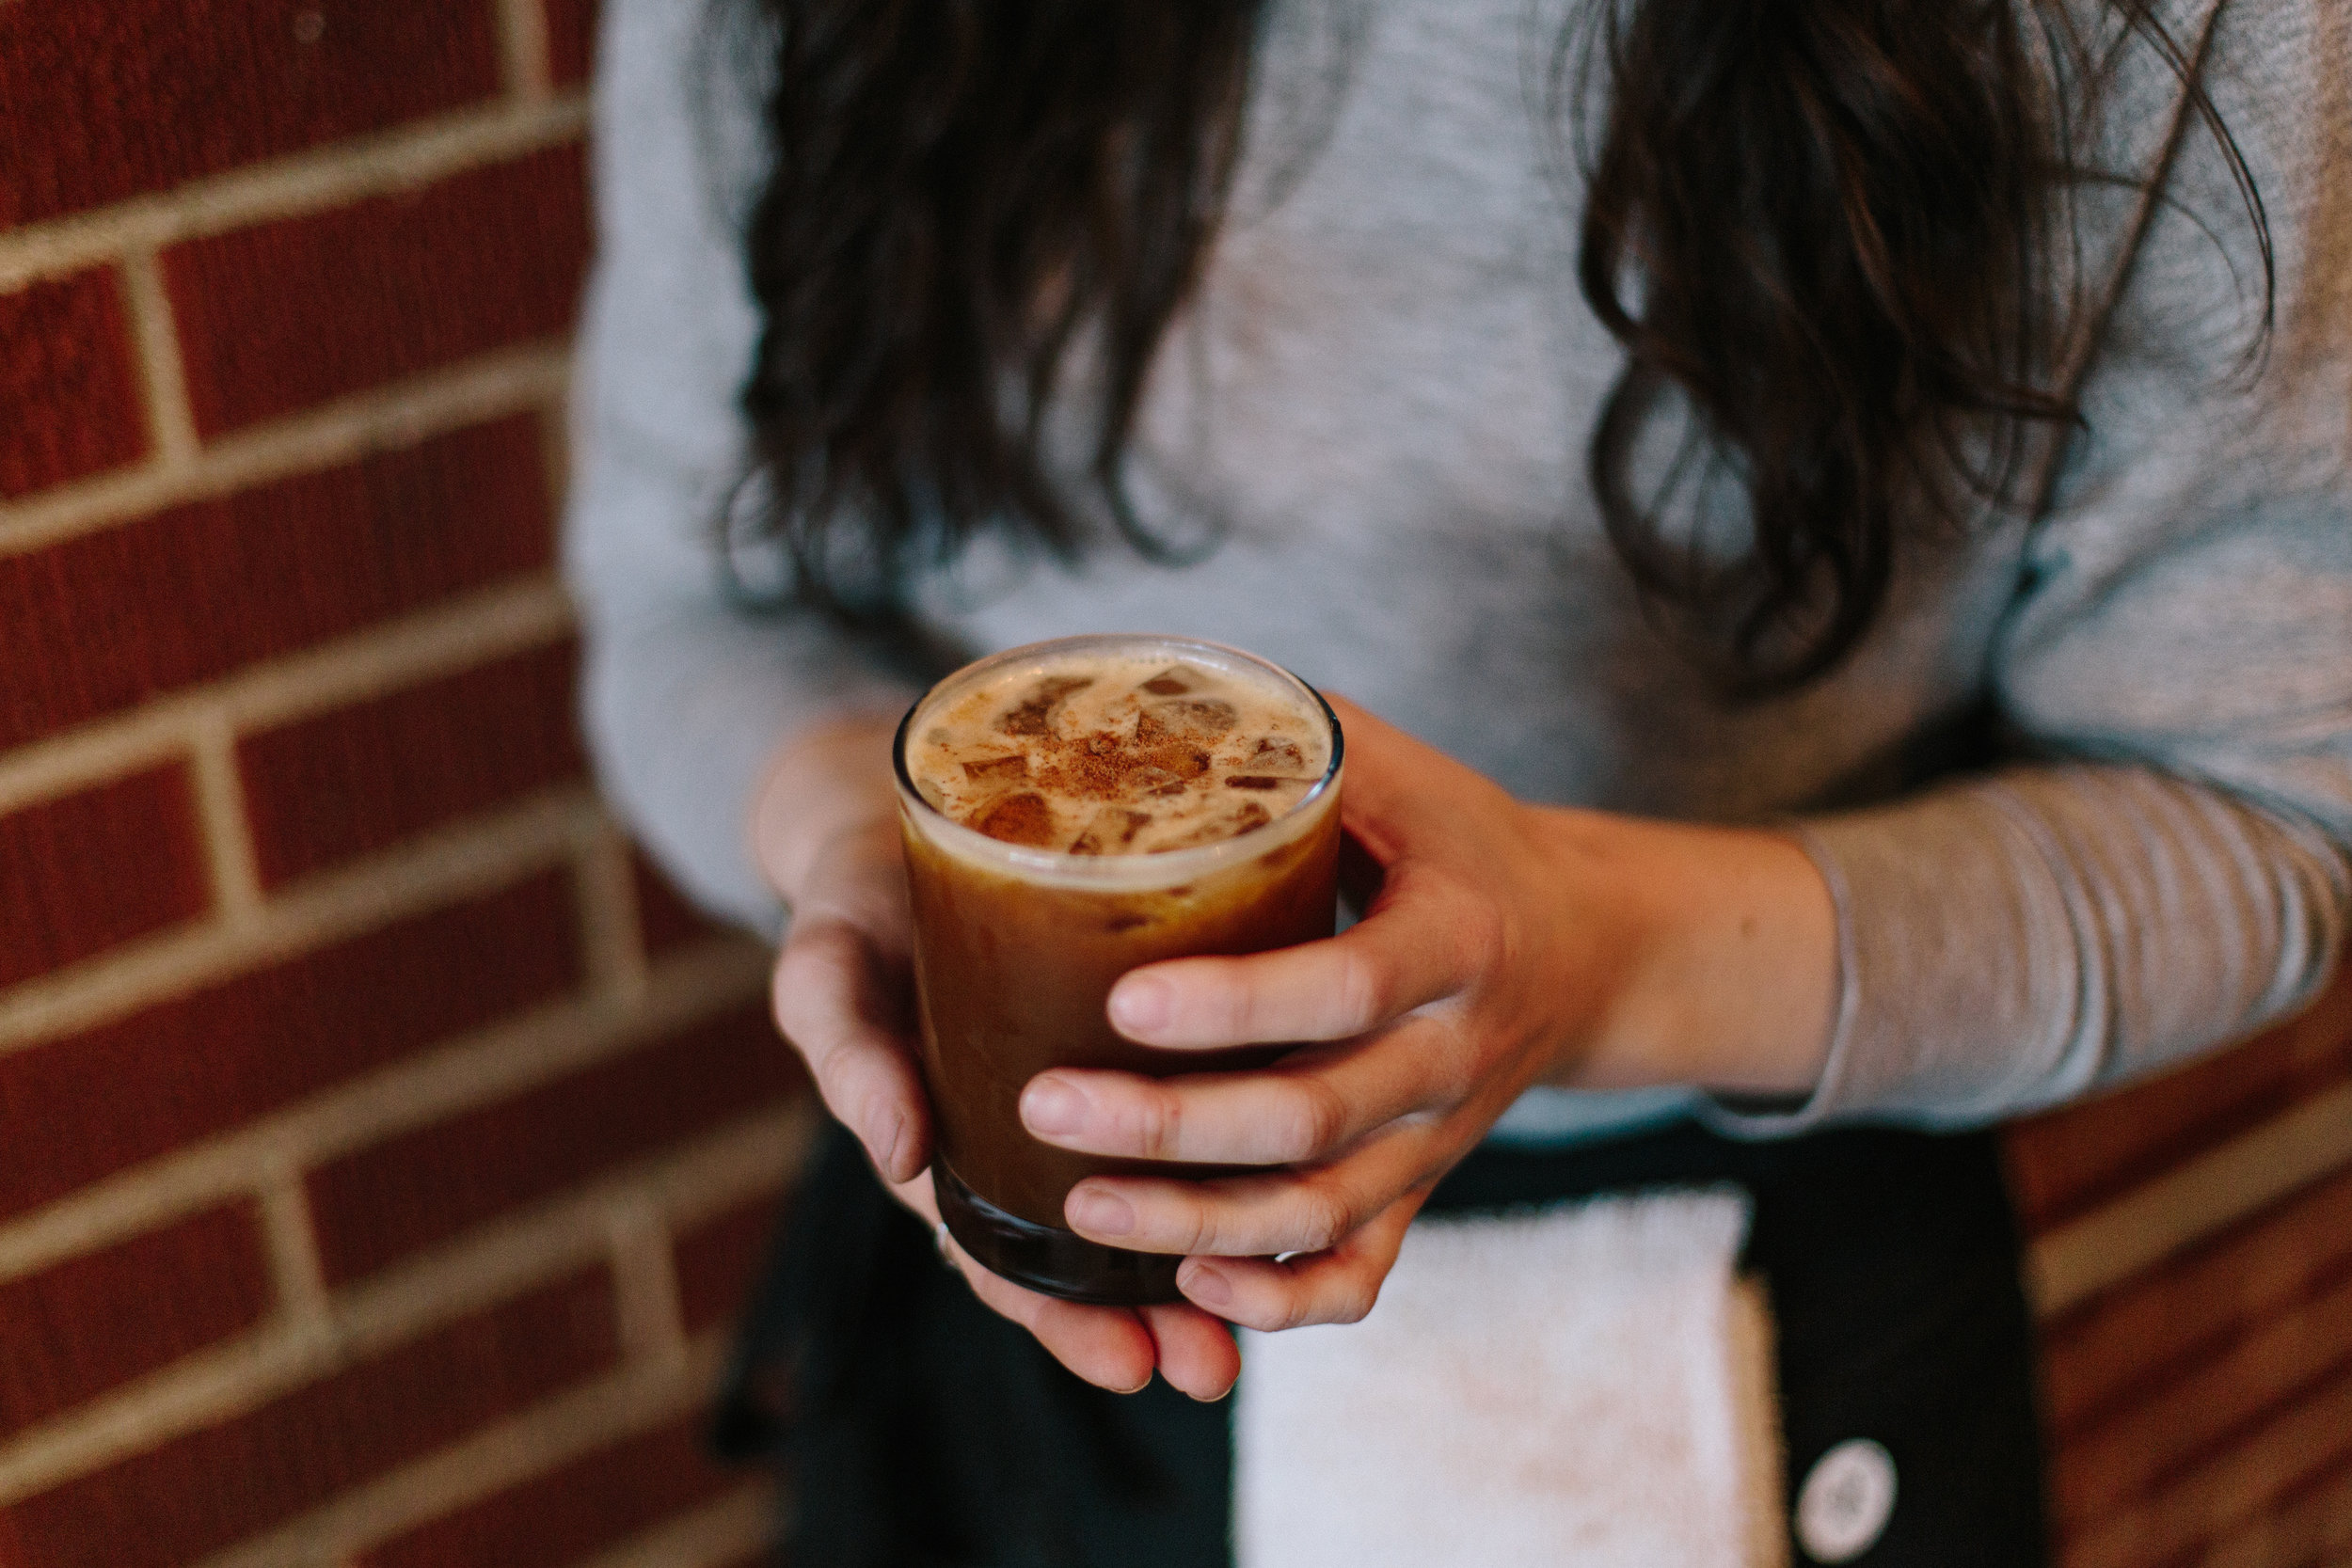 The SPRO-jay is the wildest concoction on the bunch this season. It originally came from an interesting experiment, and its stuck ever since. Freshly squeezed orange juice, espresso, house-made vanilla simple syrup, sparkling water and a dash of nutmeg on top. This is basically a coffee creamsicle, perfect for the warmer days!